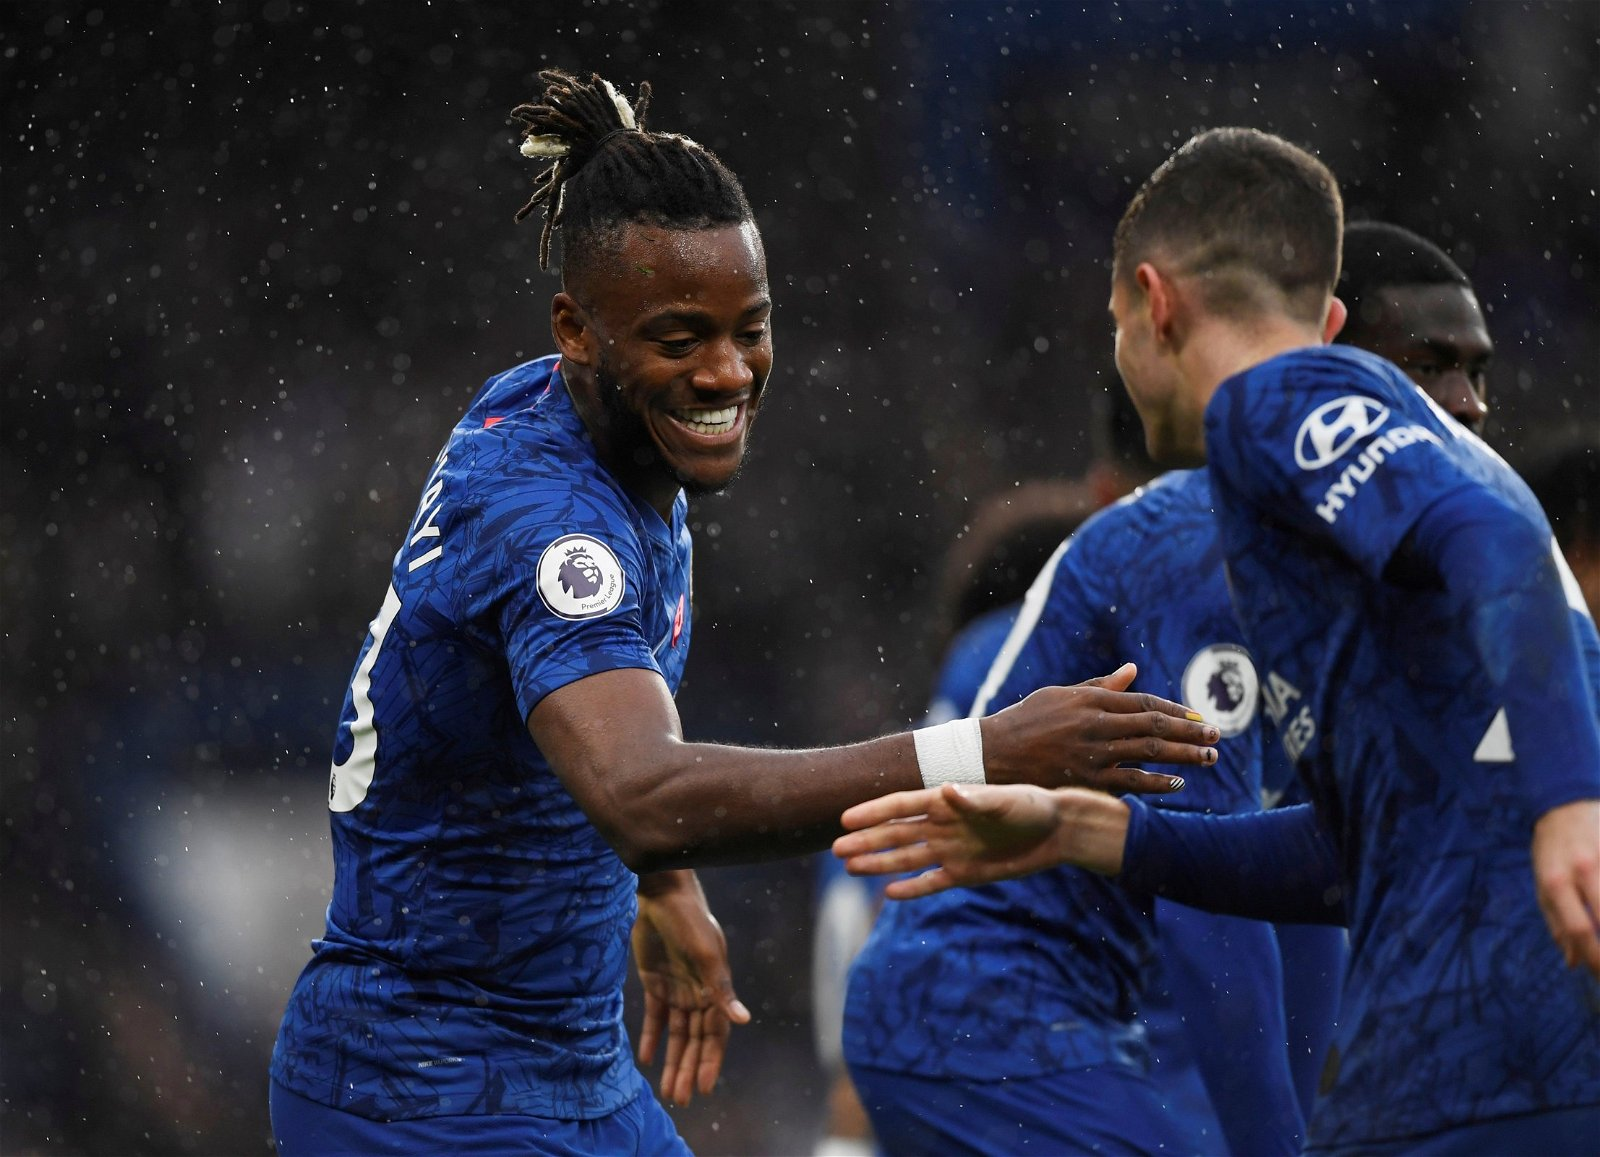 Chelsea's Christian Pulisic celebrates scoring their second goal with Michy Batshuayi